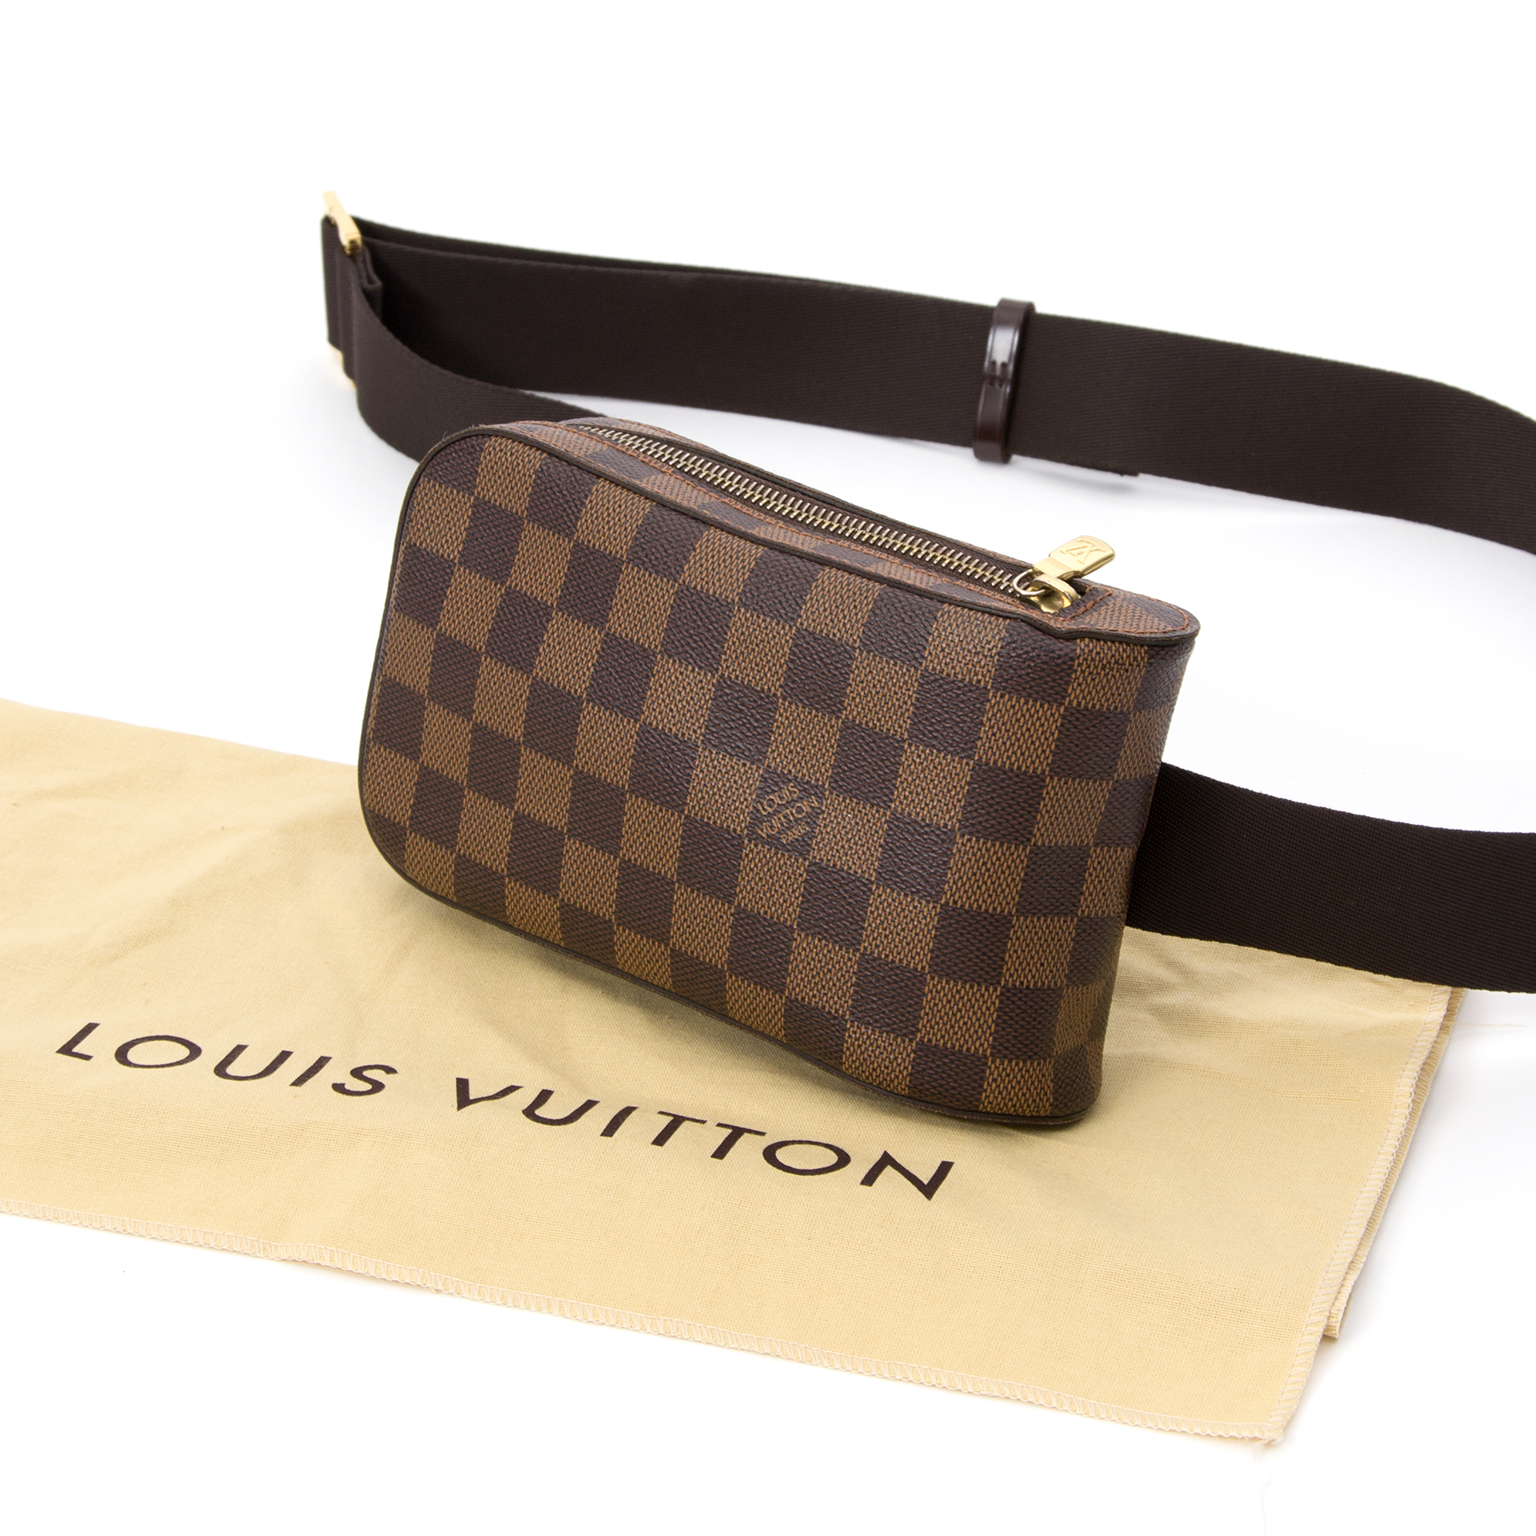 e1b183c02413 ... Louis Vuitton Damier Ebene  Geronimos  Bag LabelLOV secondhand safe and  secure online luxury